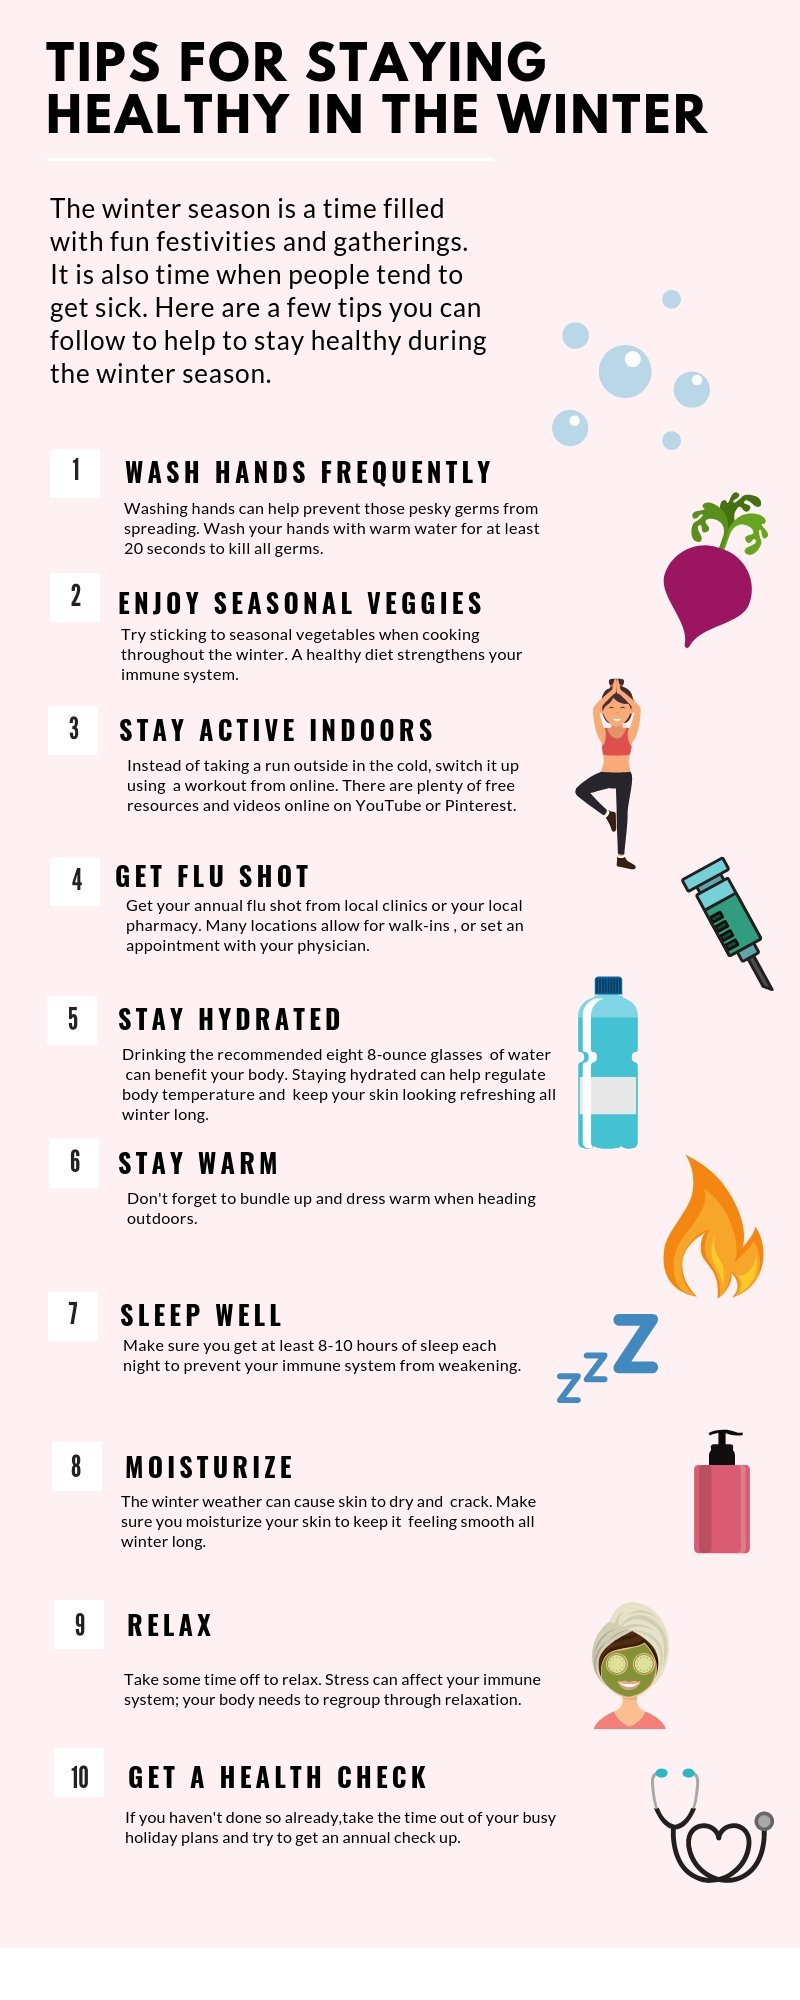 10 Tips for Staying Healthy in the Winter